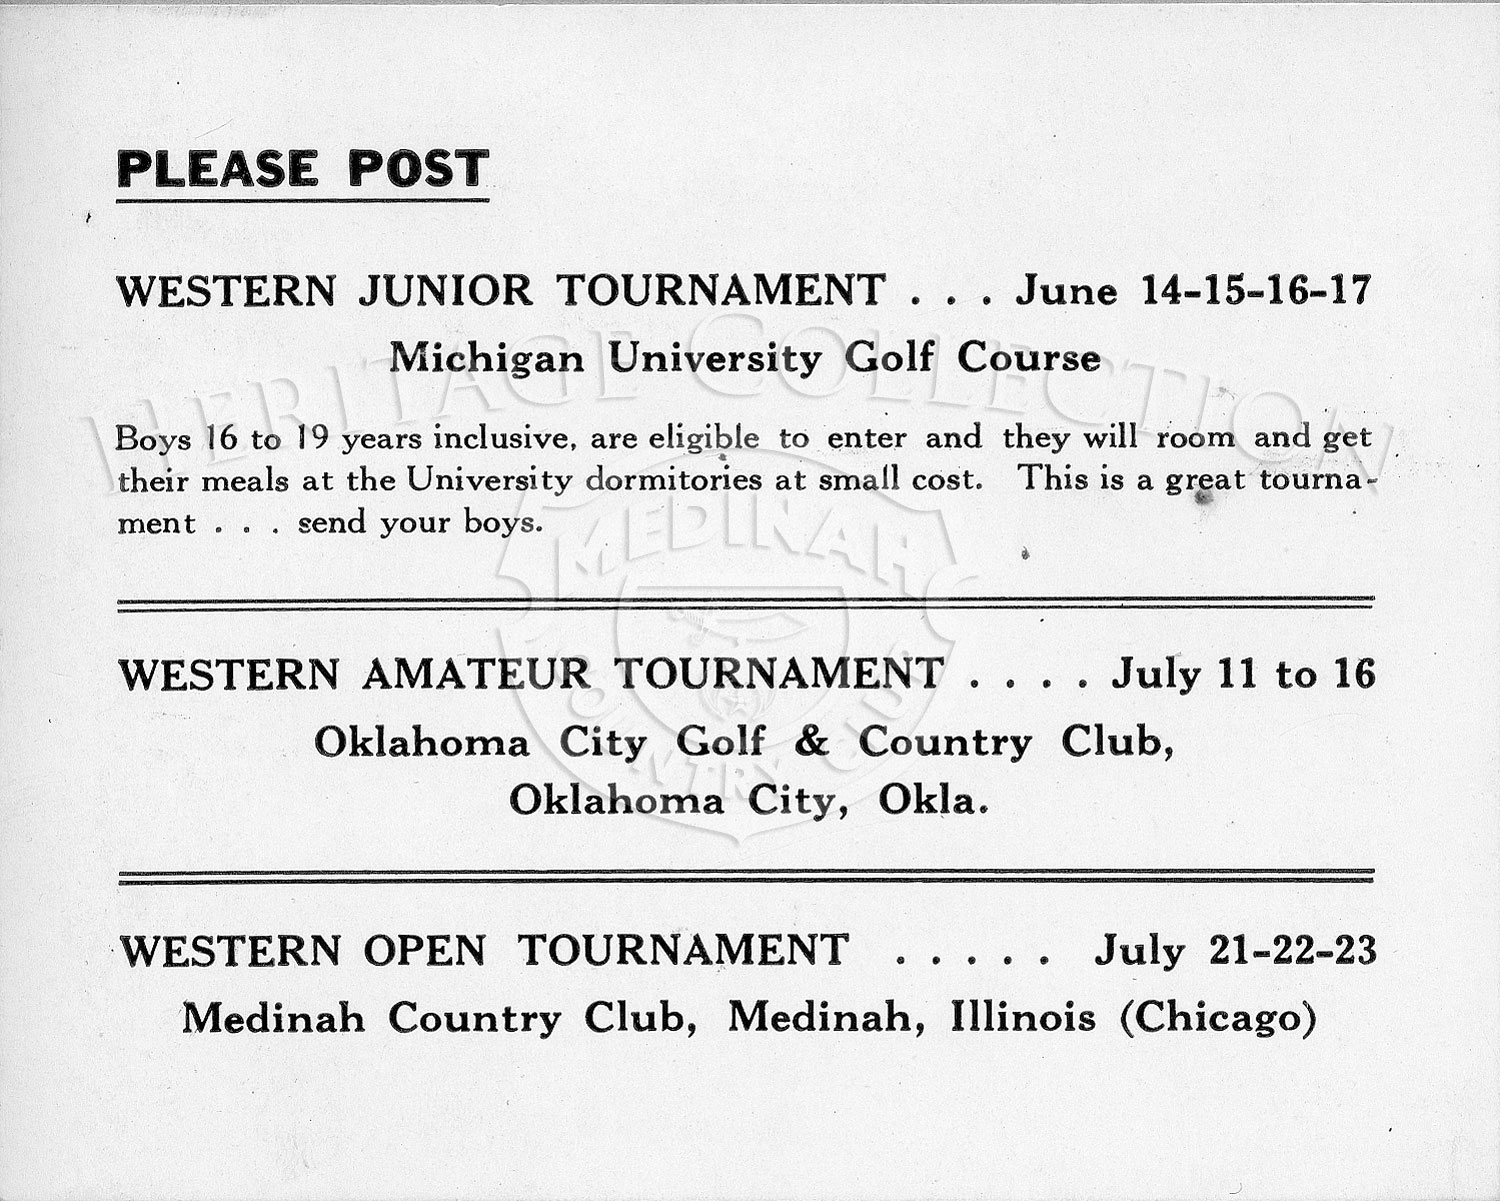 A Western Golf Association advertisement from 1939, listed three of their tournaments scheduled for the month of June and July, including the 40th Western Open at Medinah Country Club.